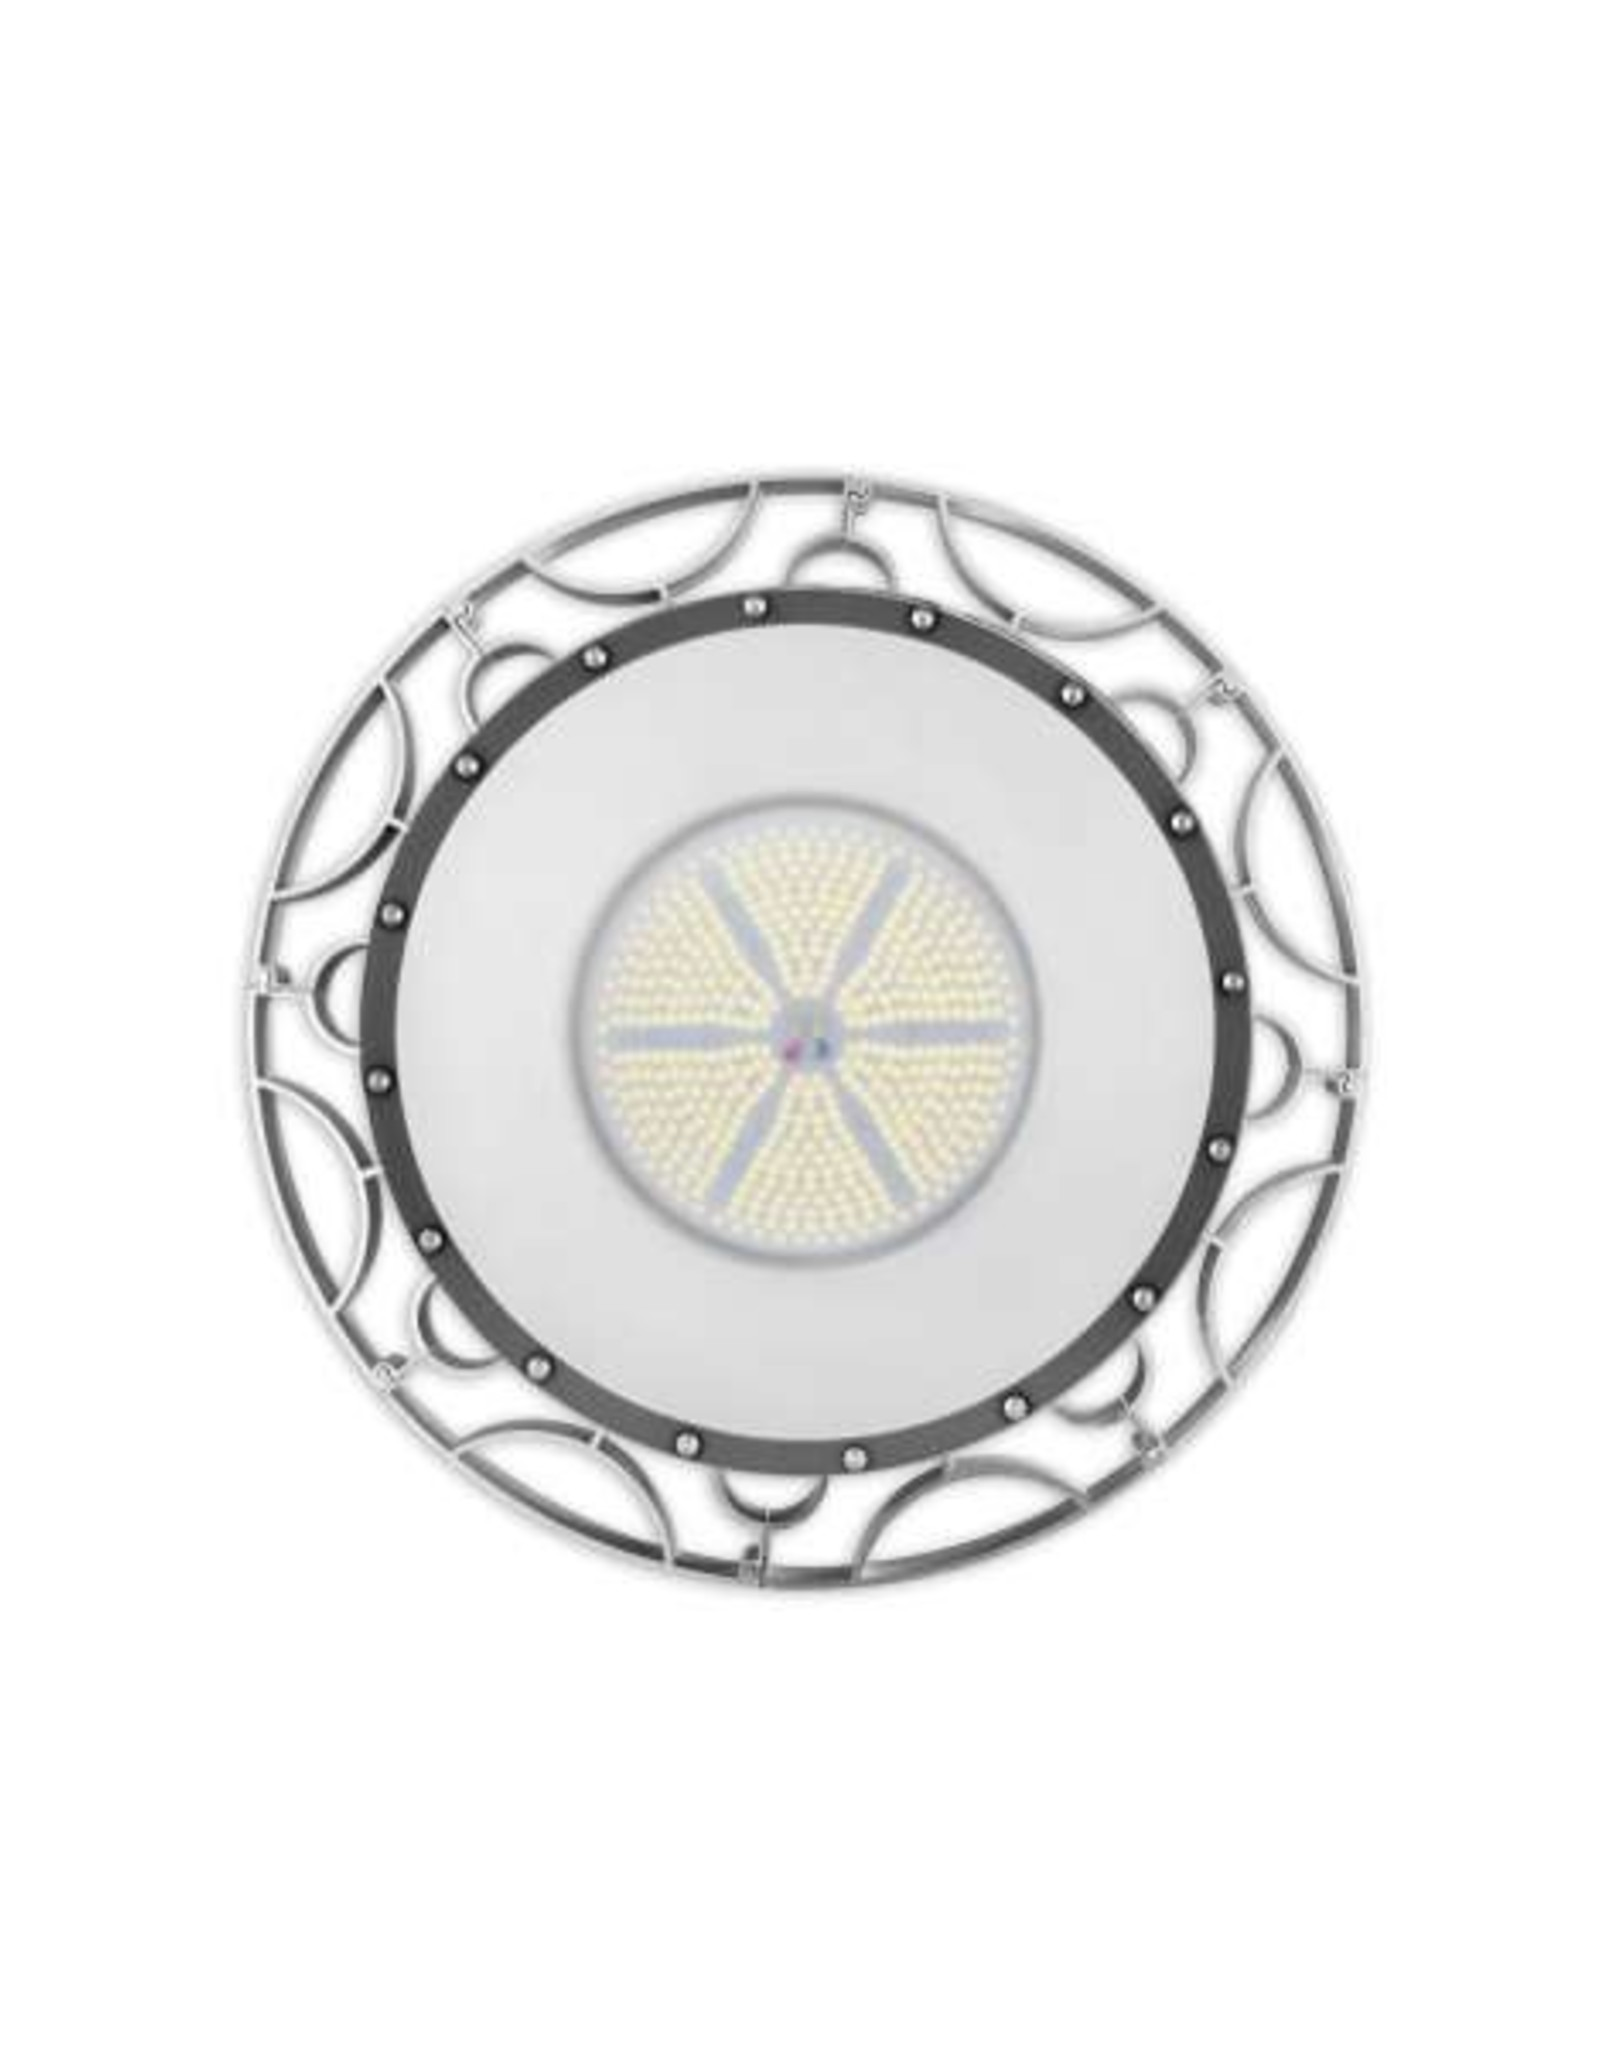 LUXON LED HIGHBAY : LED 3.0 II